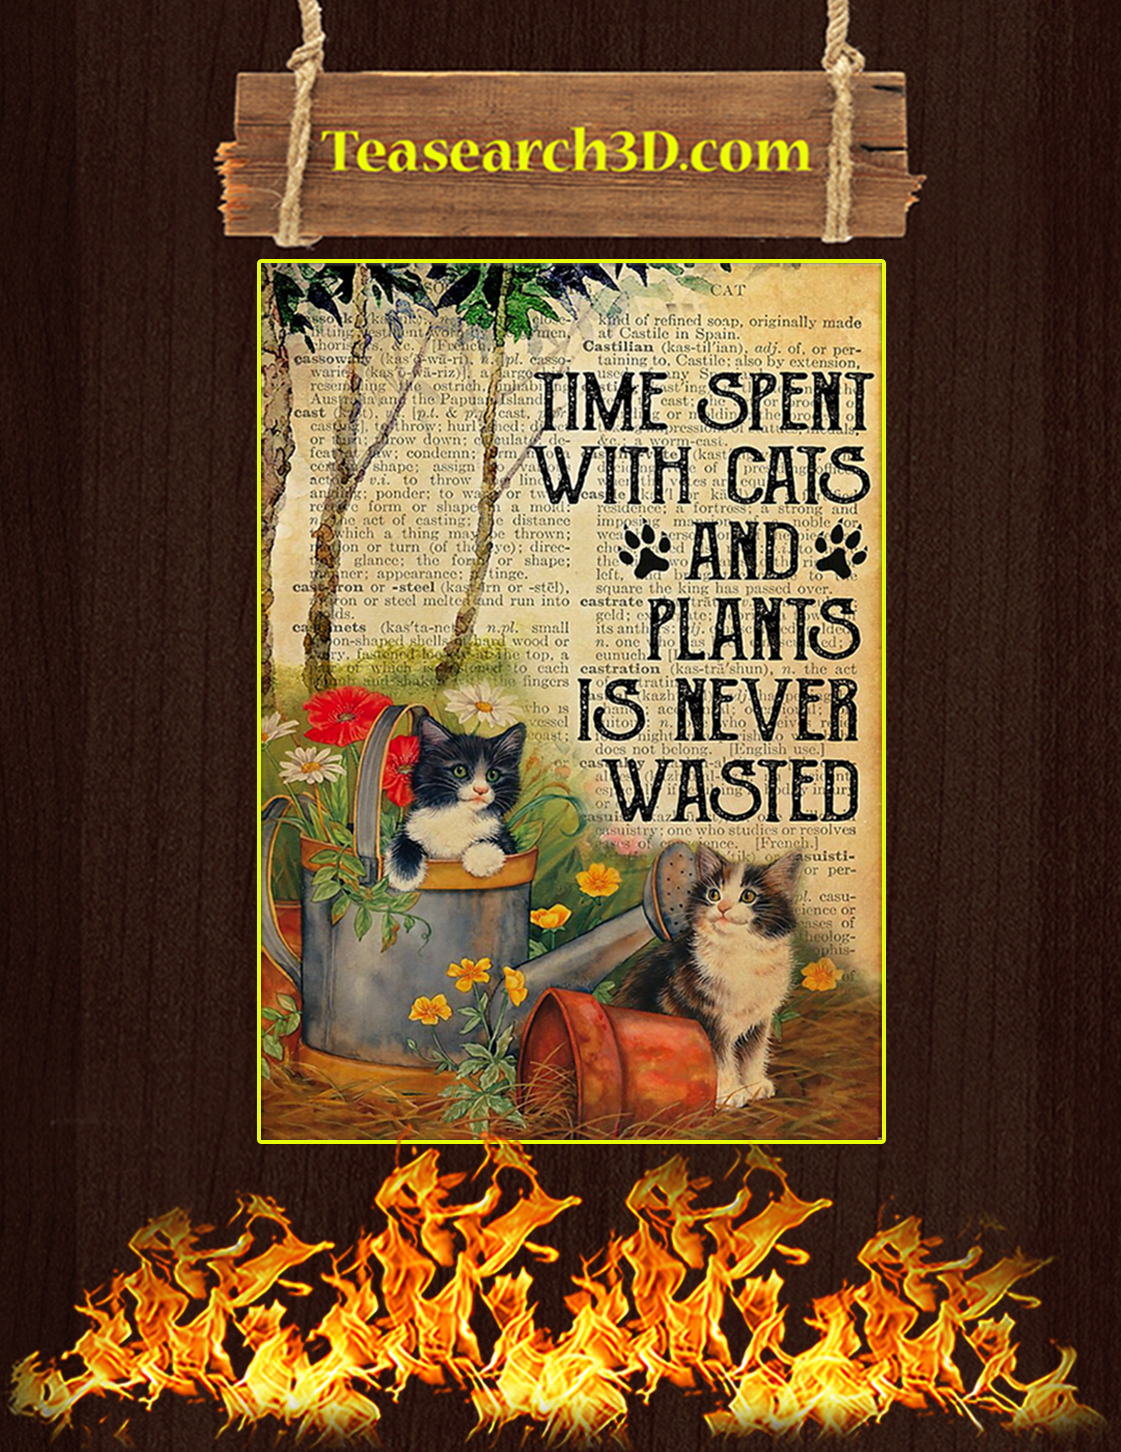 Time spent with cats and plants dictionary poster A3